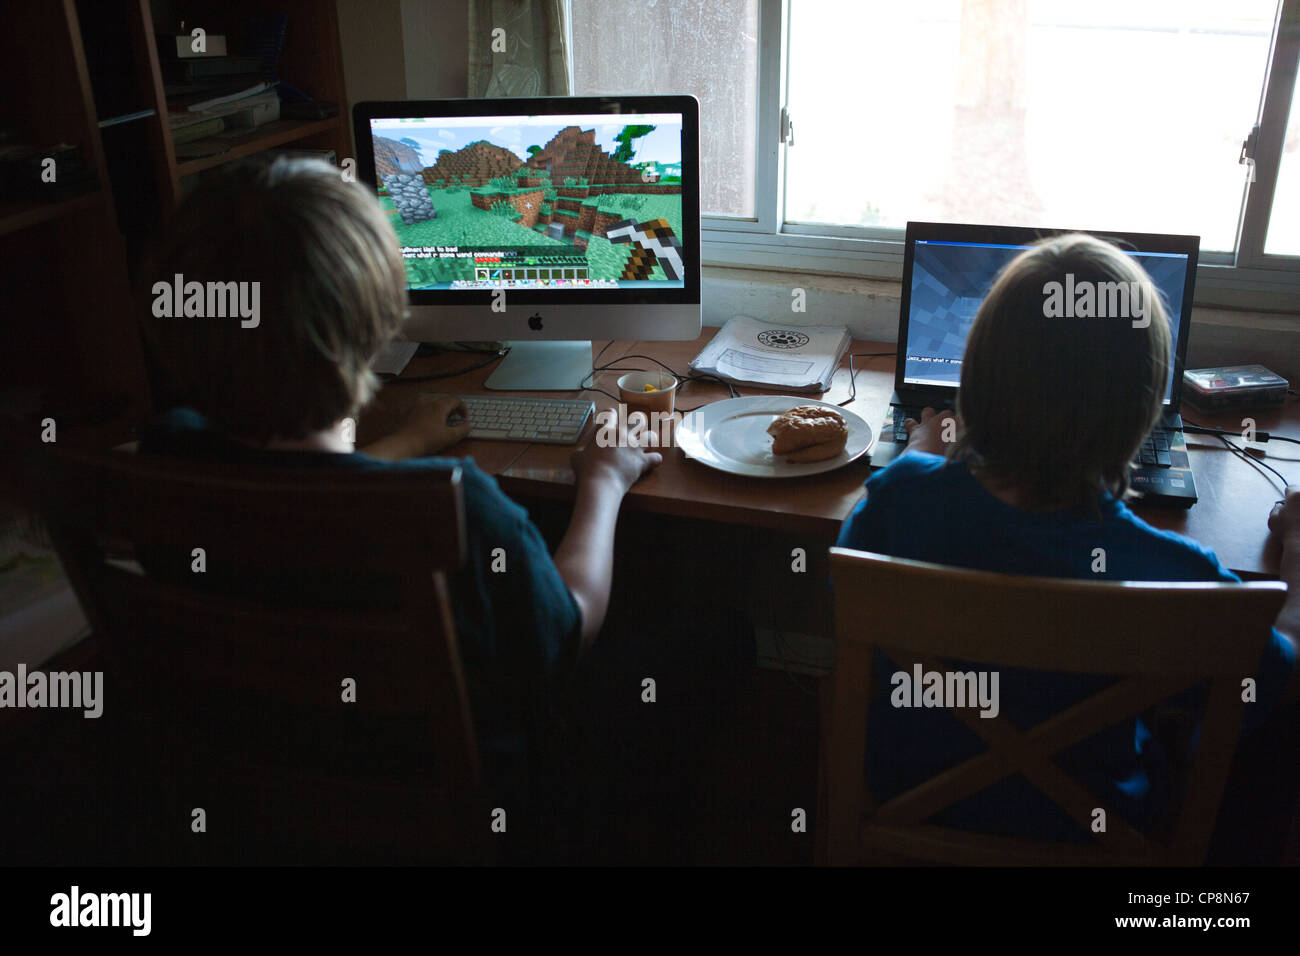 Two boys playing the video game Minecraft at home on computers. - Stock Image